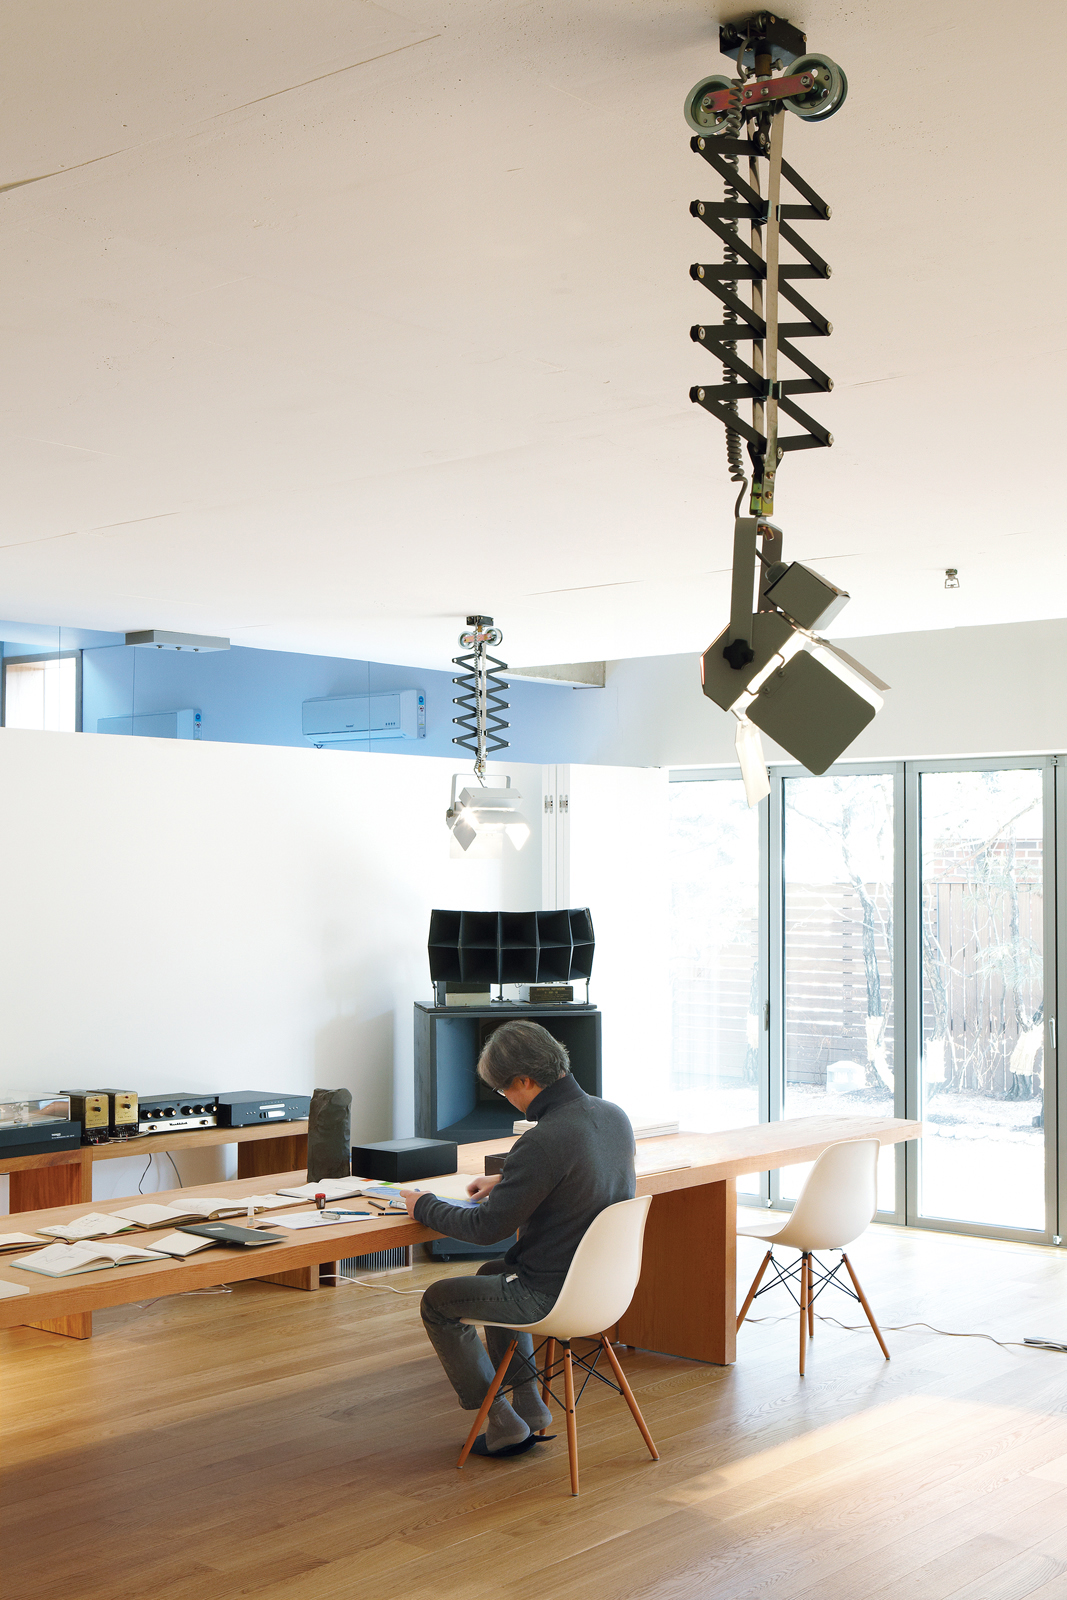 Light is a key element of the home's design. Photography lights from a local manufacturer keep the basement studio bright.